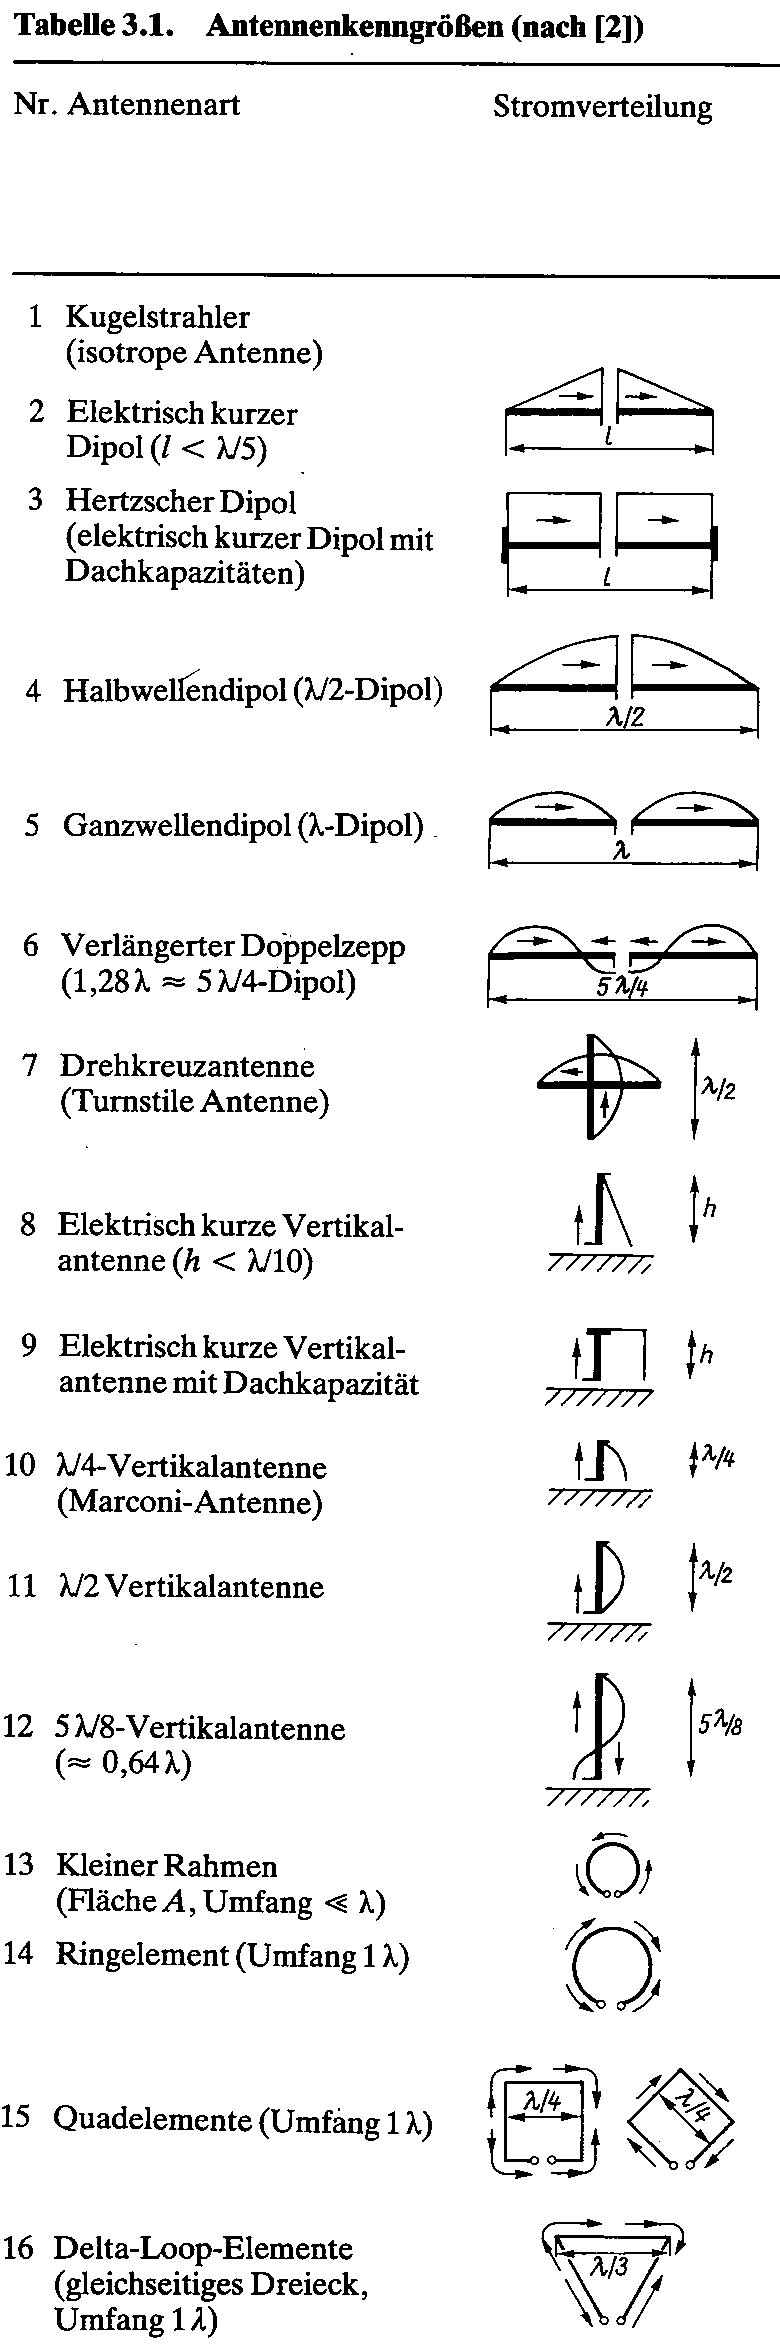 Antenna types, antenna book